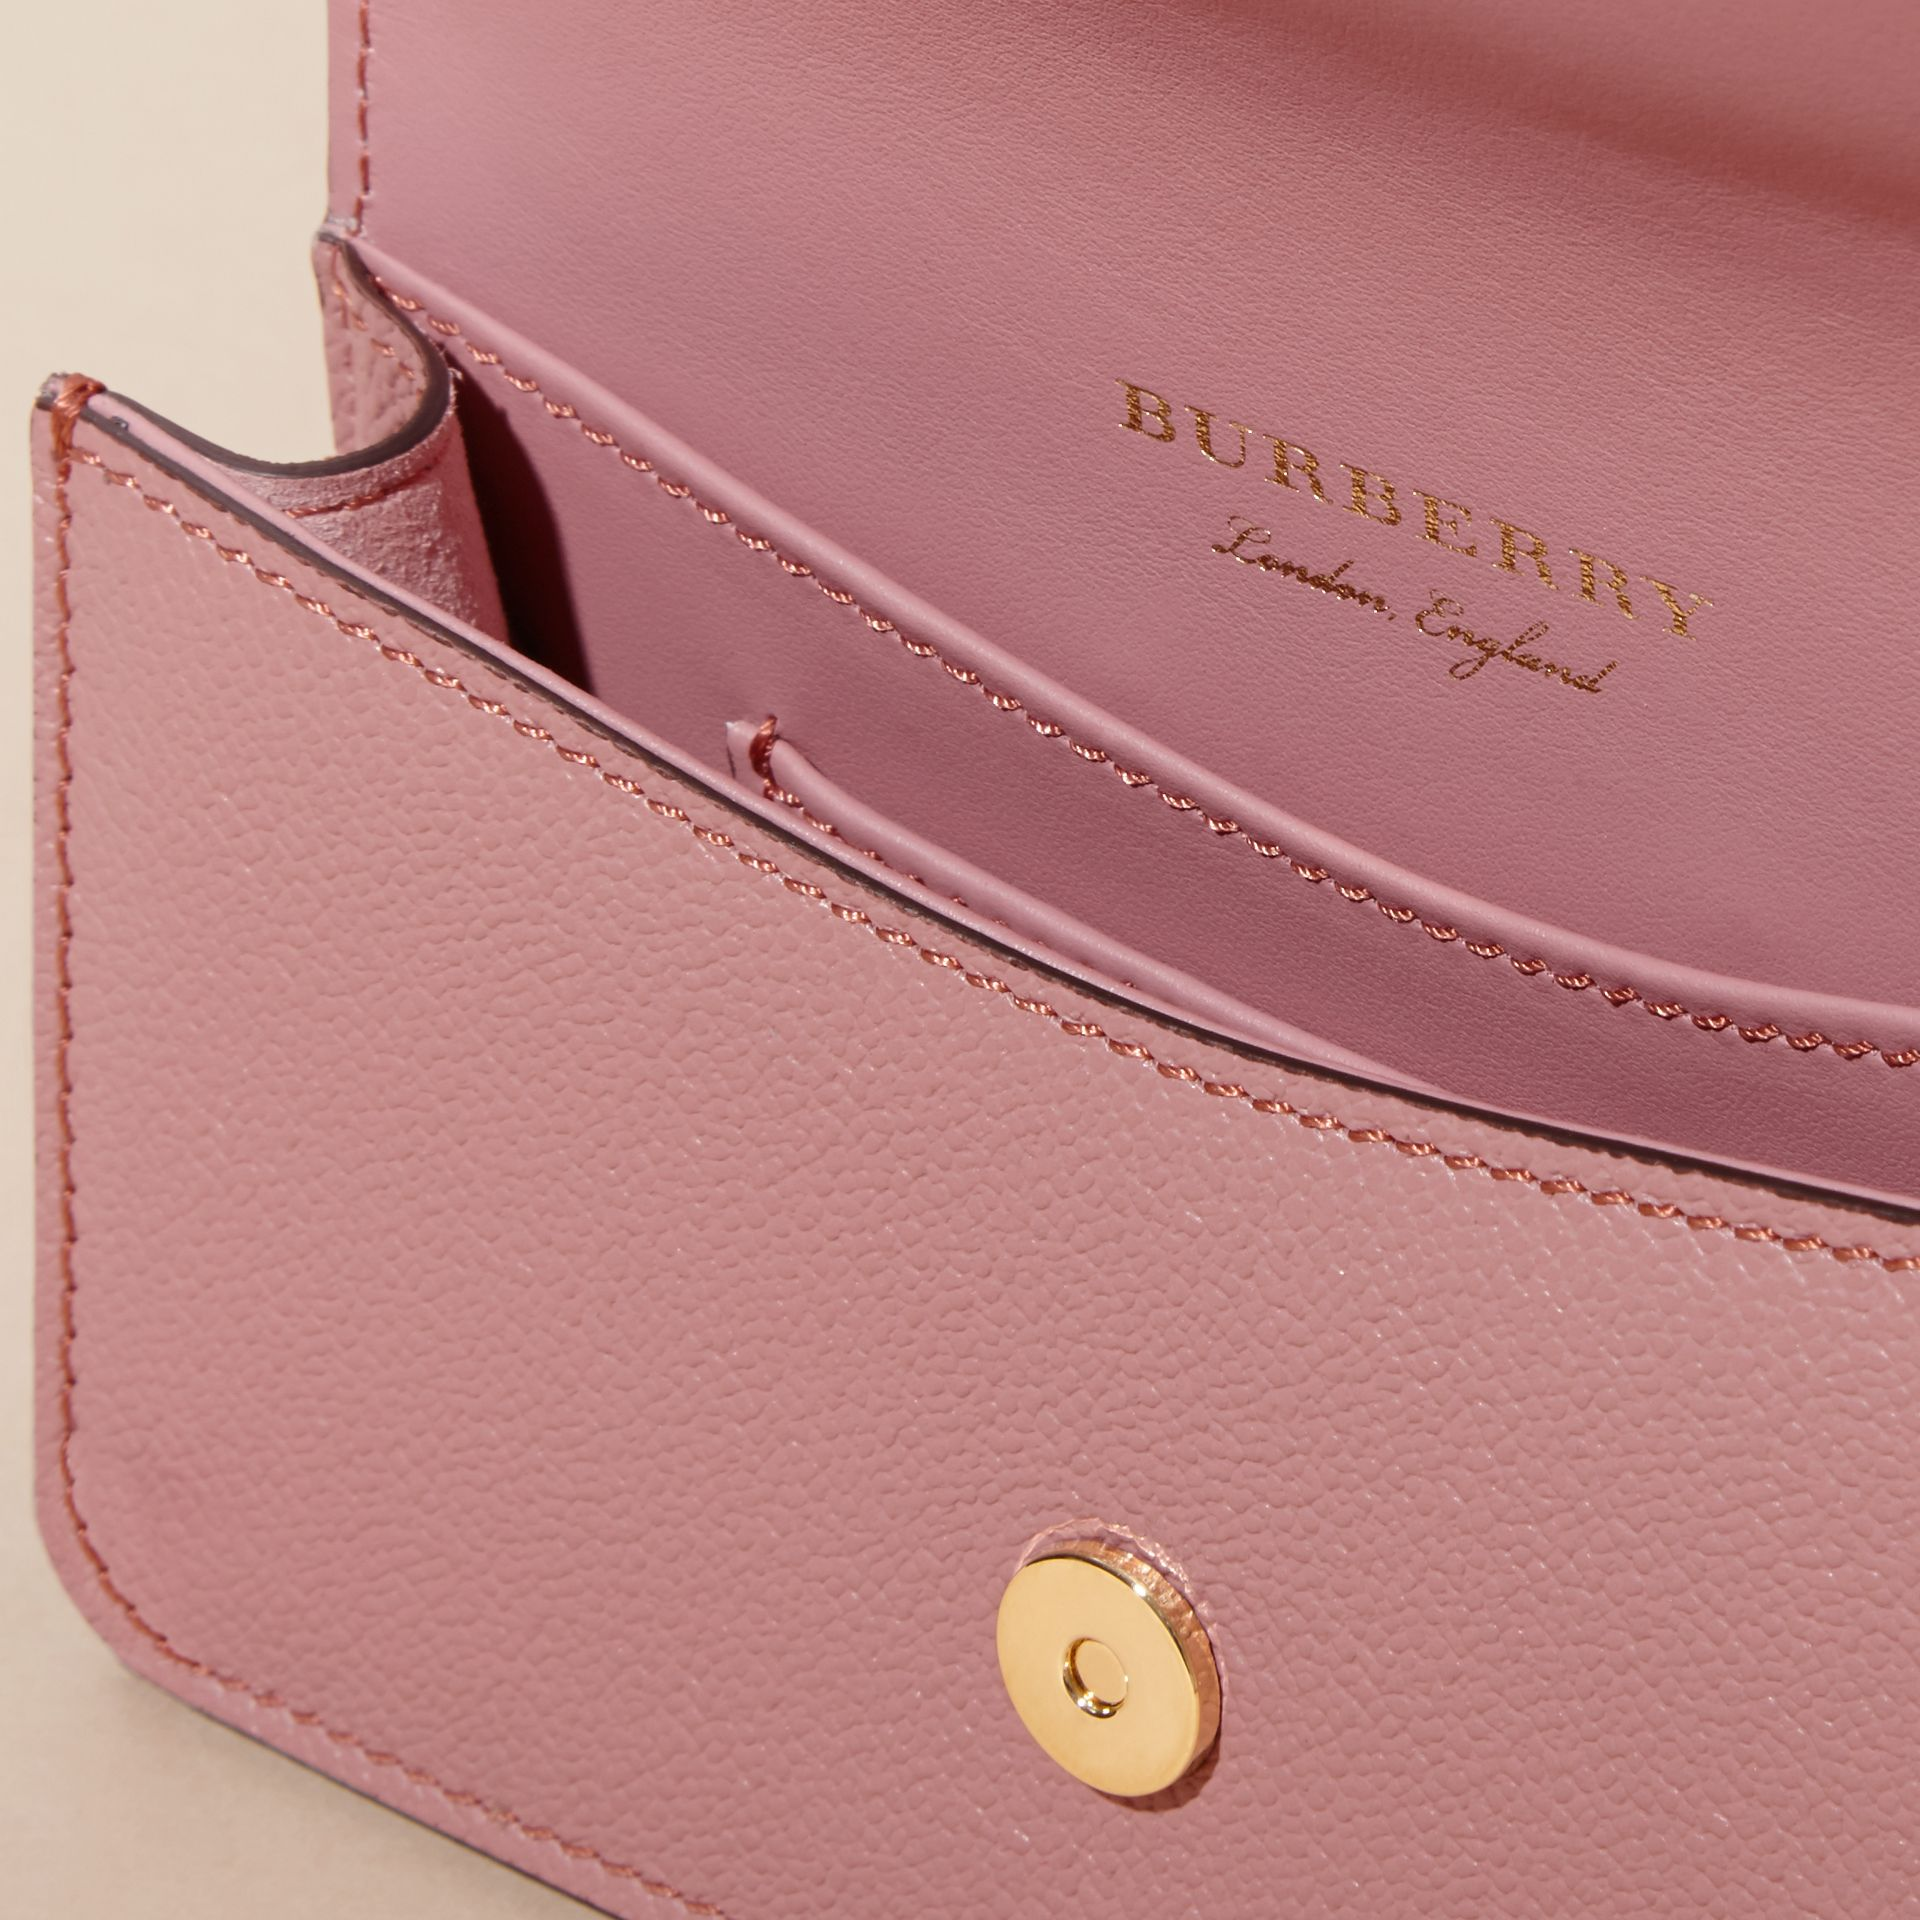 The Mini Buckle Bag in Grainy Leather in Dusty Pink - Women | Burberry Canada - gallery image 6